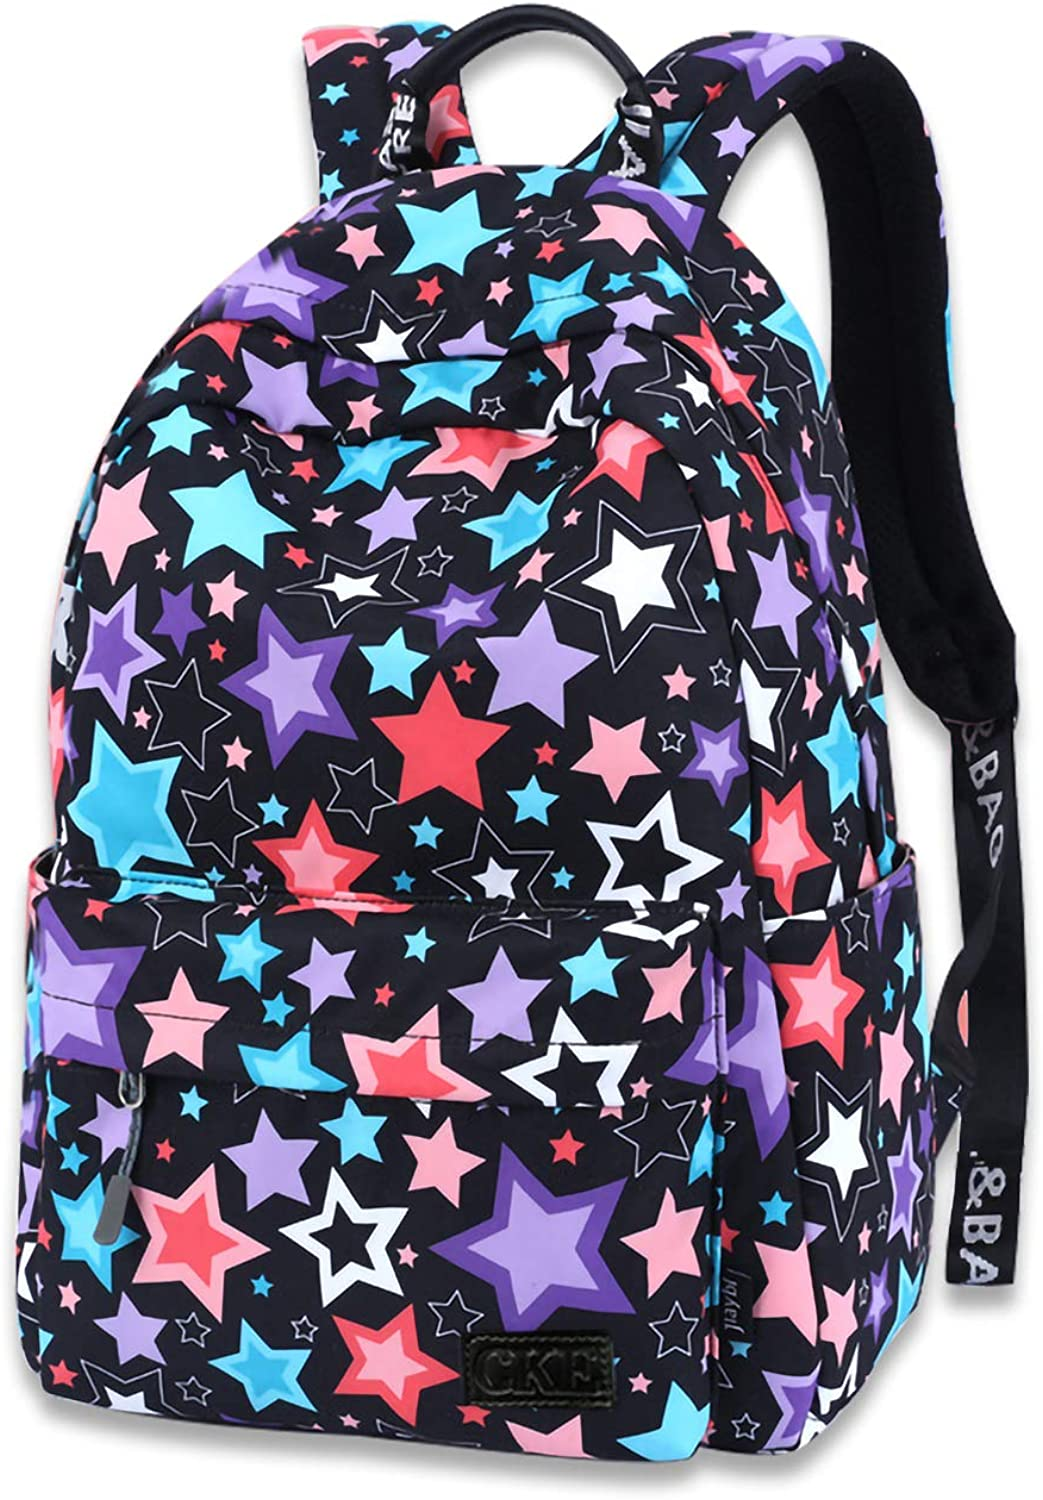 Galaxy Backpack School Backpack for Kids Boys Girls Teens Student Stylish Unisex Canvas Laptop Backpack with Pencil Bag